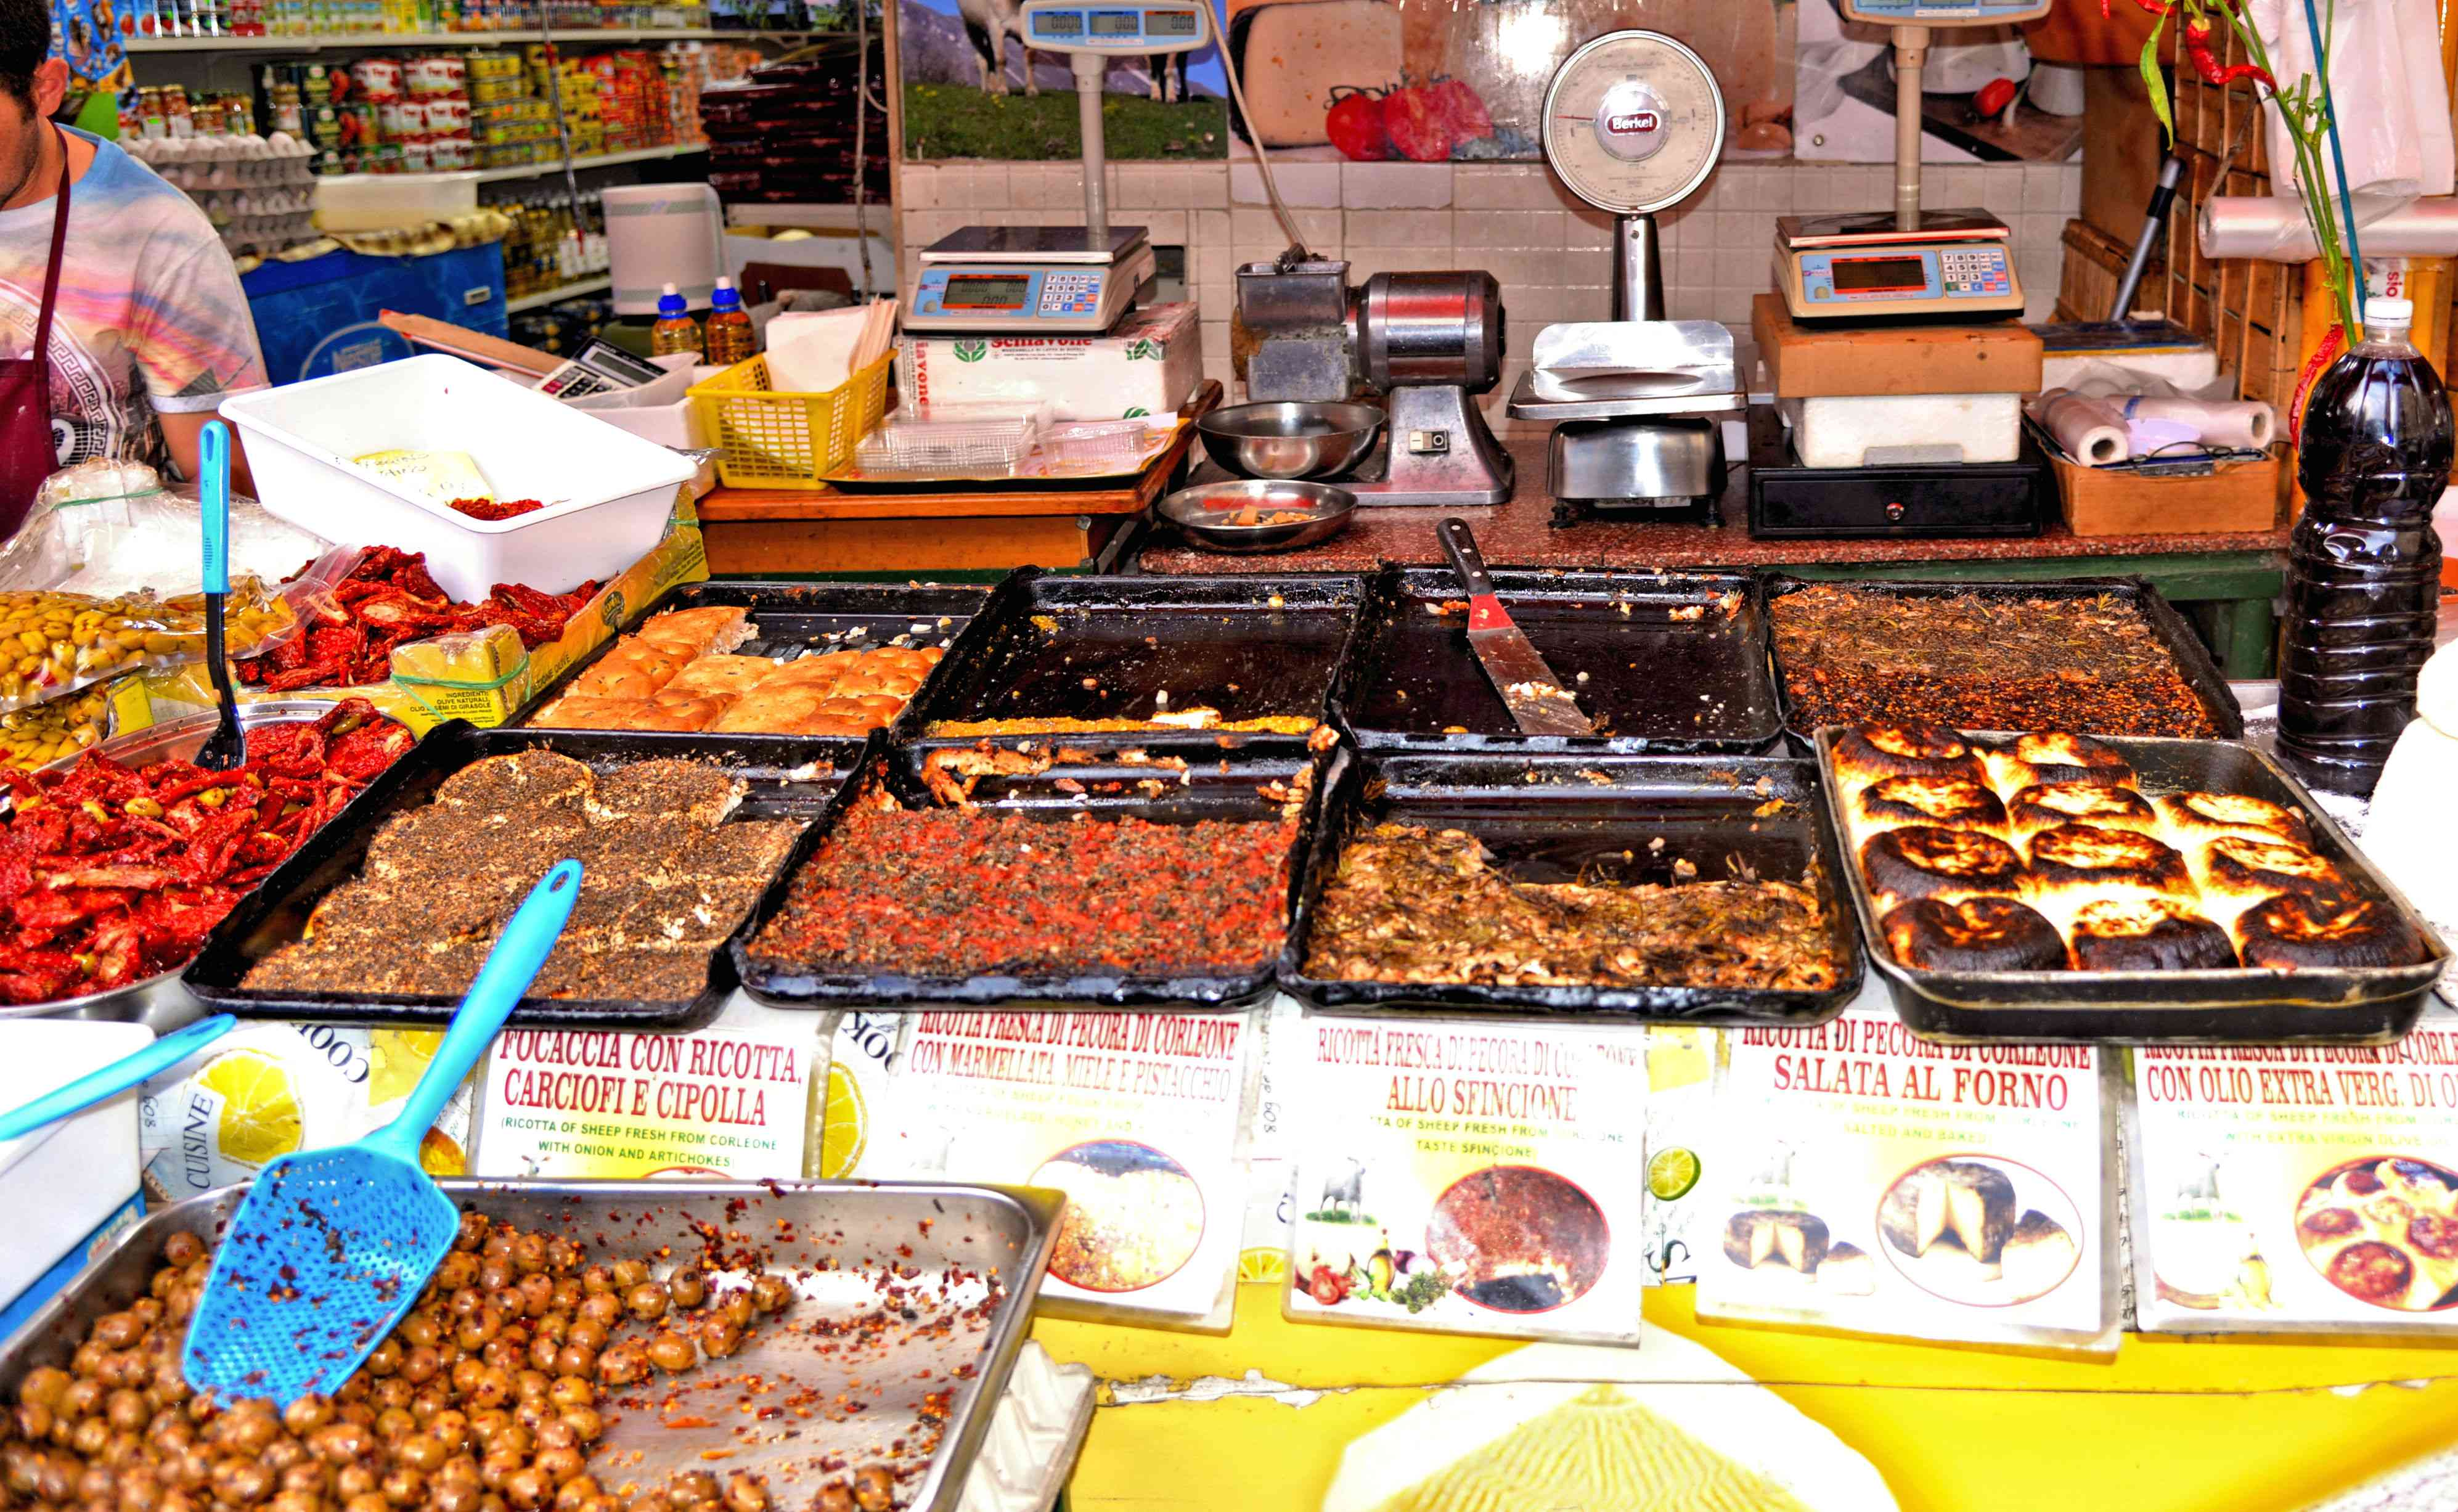 Various kinds of olives and any kind of local food and dishes at street market Ballarò in Palermo